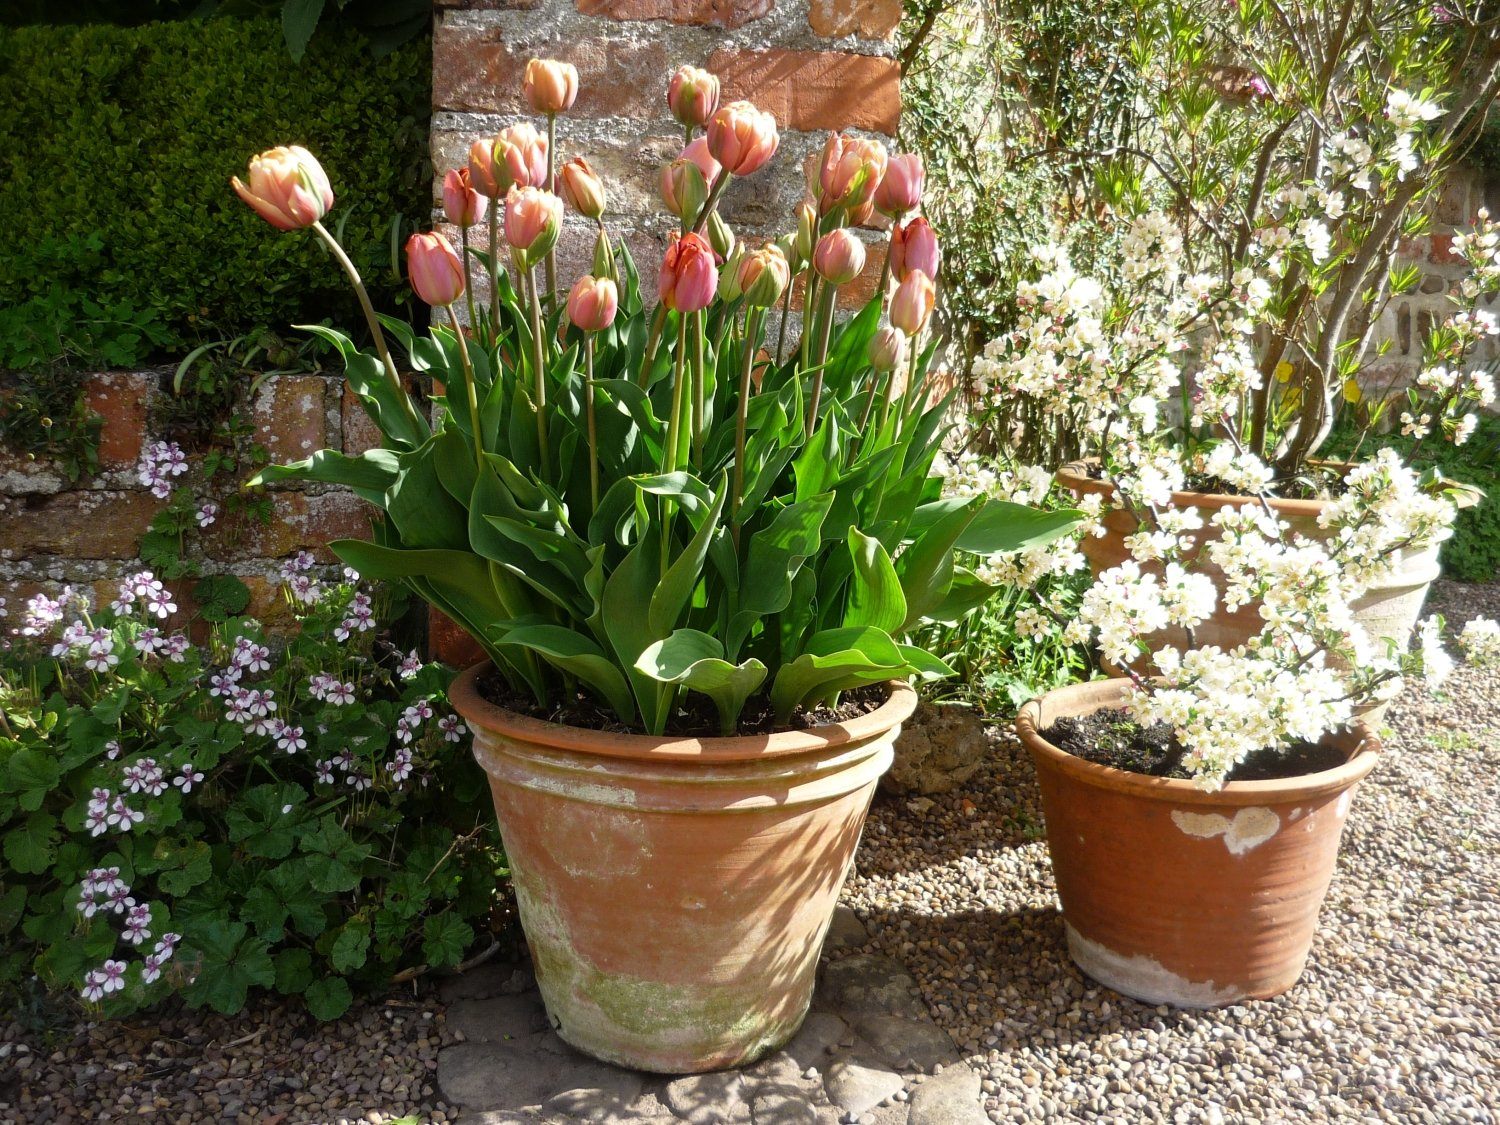 Peach tulips in pot